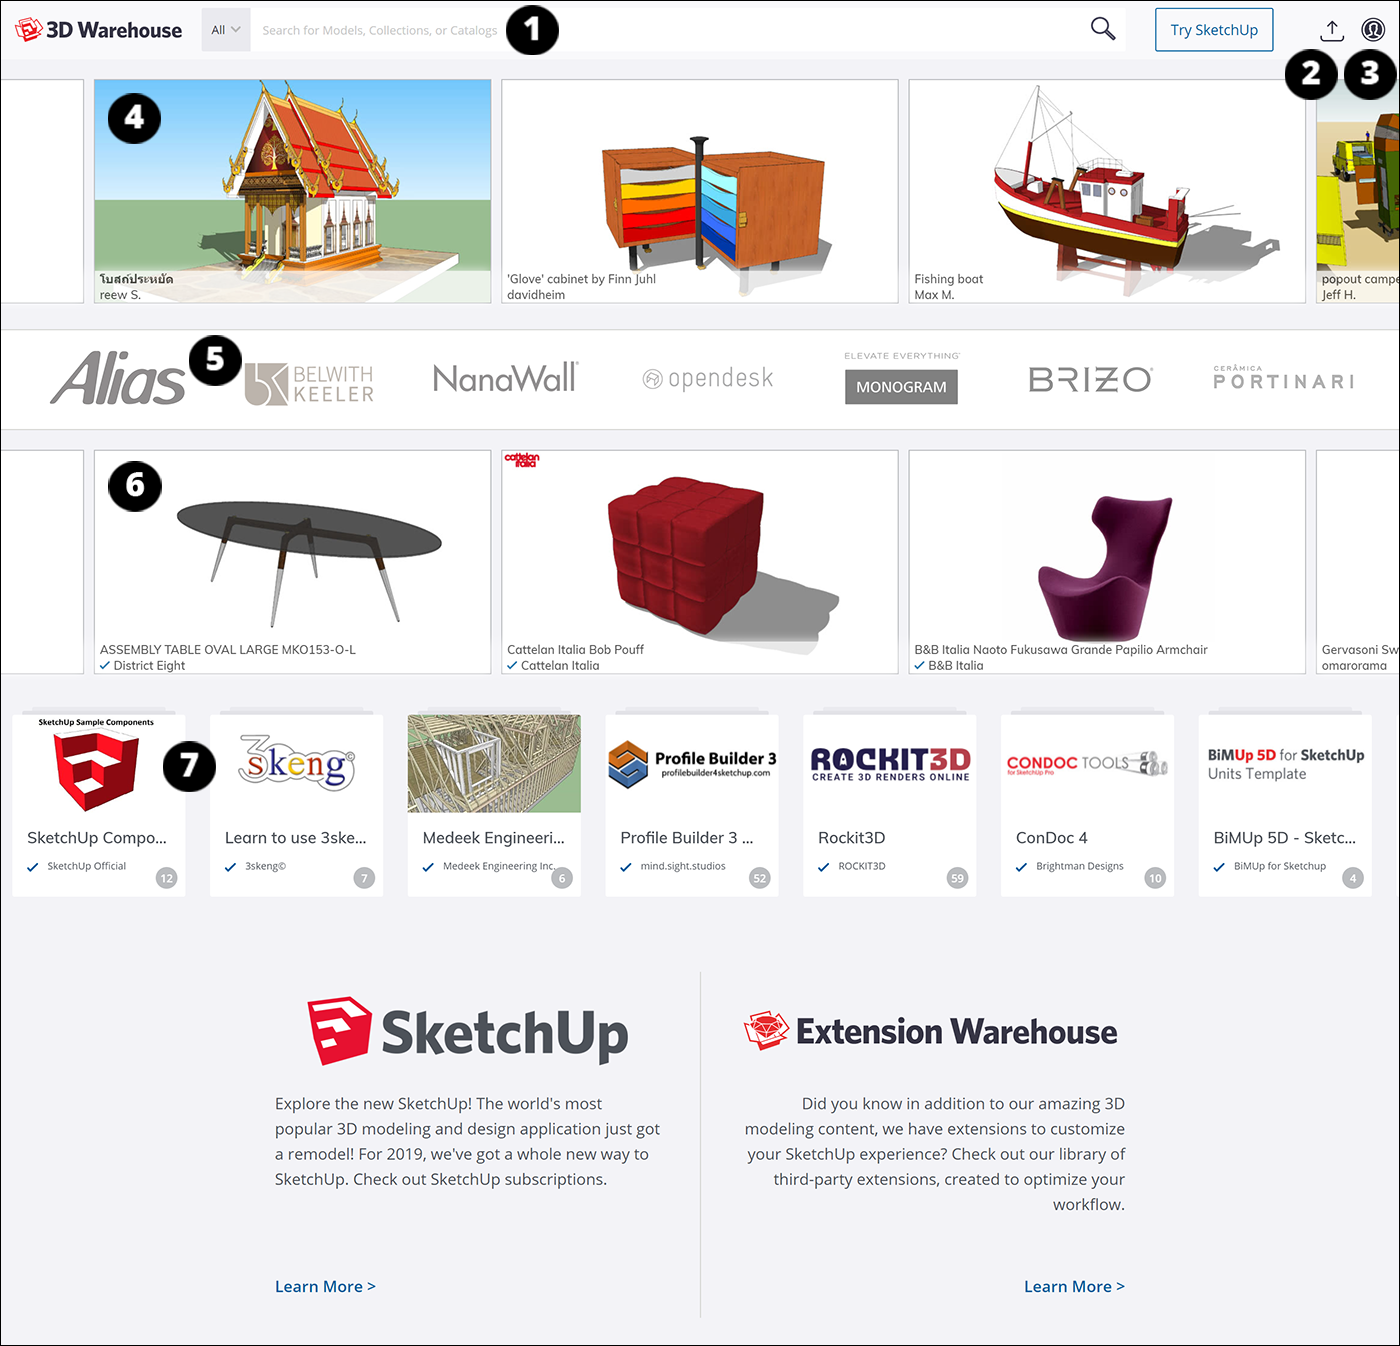 From the main page of 3D Warehouse, you can search for SketchUp models and materials based on keywords, brands, and more